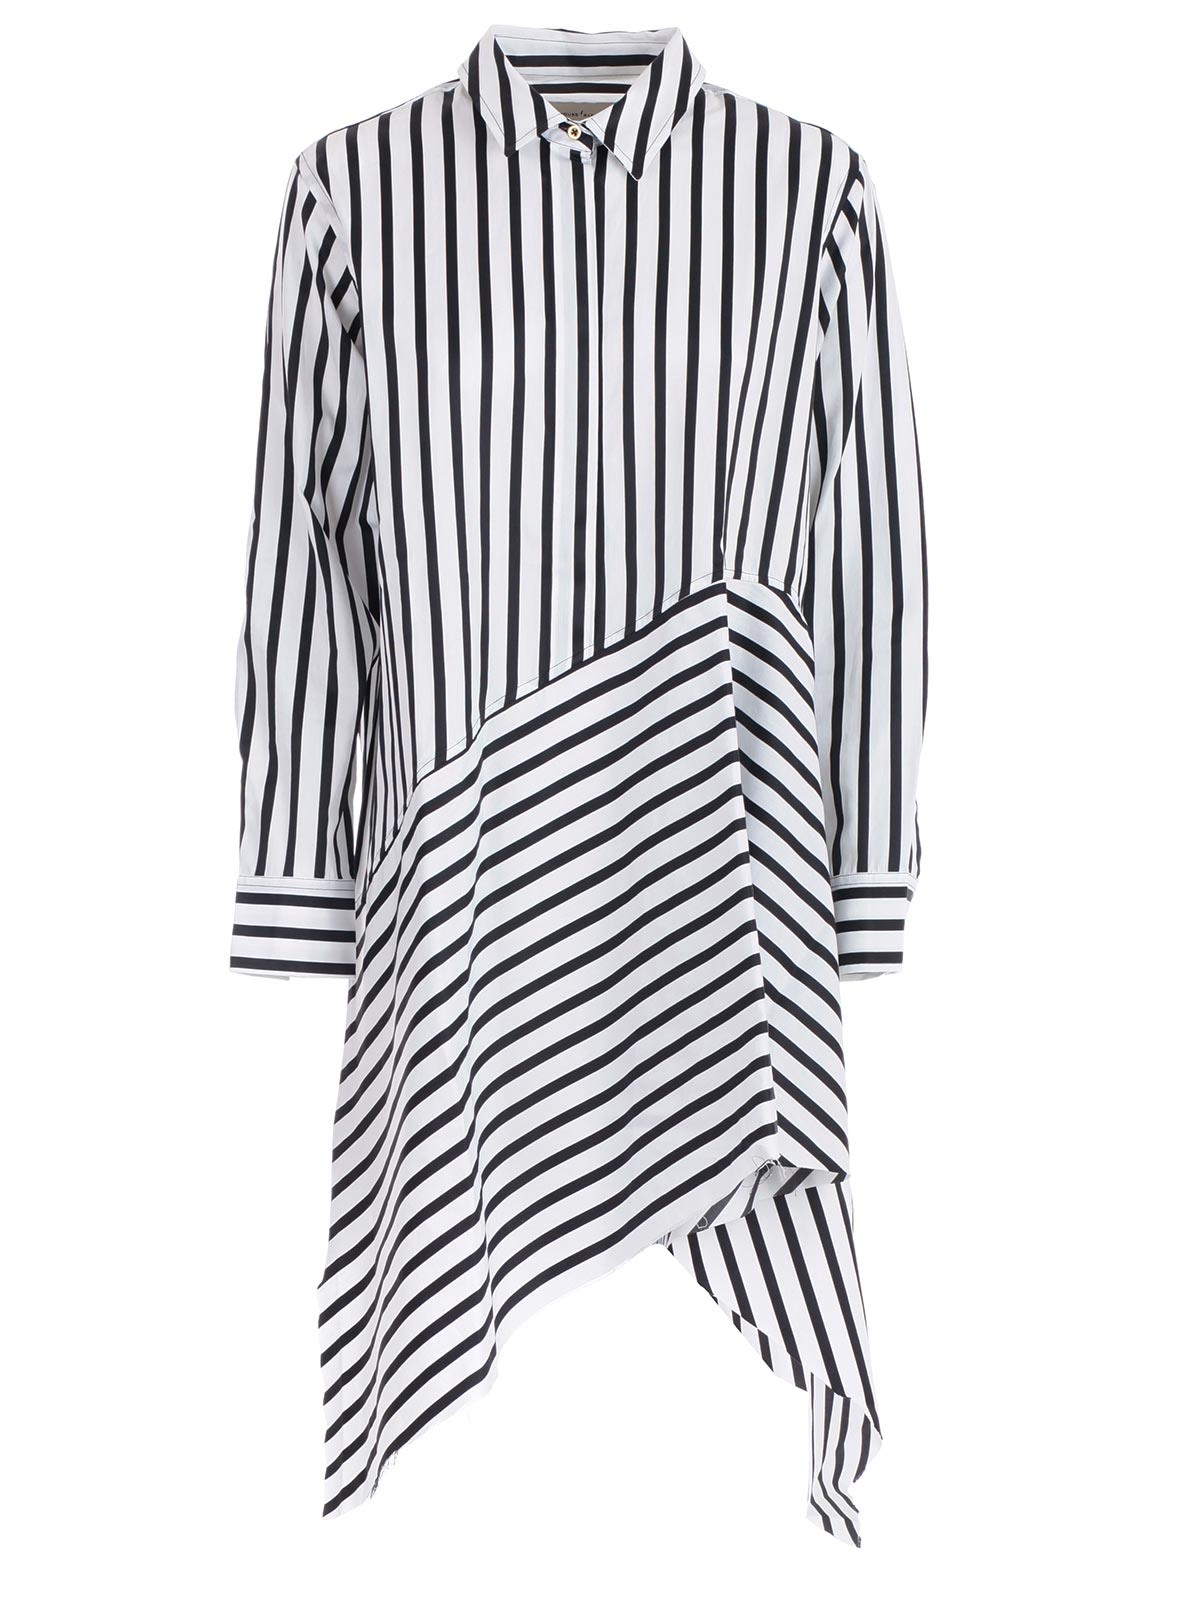 13148e5cb640 Marques'Almeida Marques'Almeida Asymmetric Shirt Dress - Black White ...